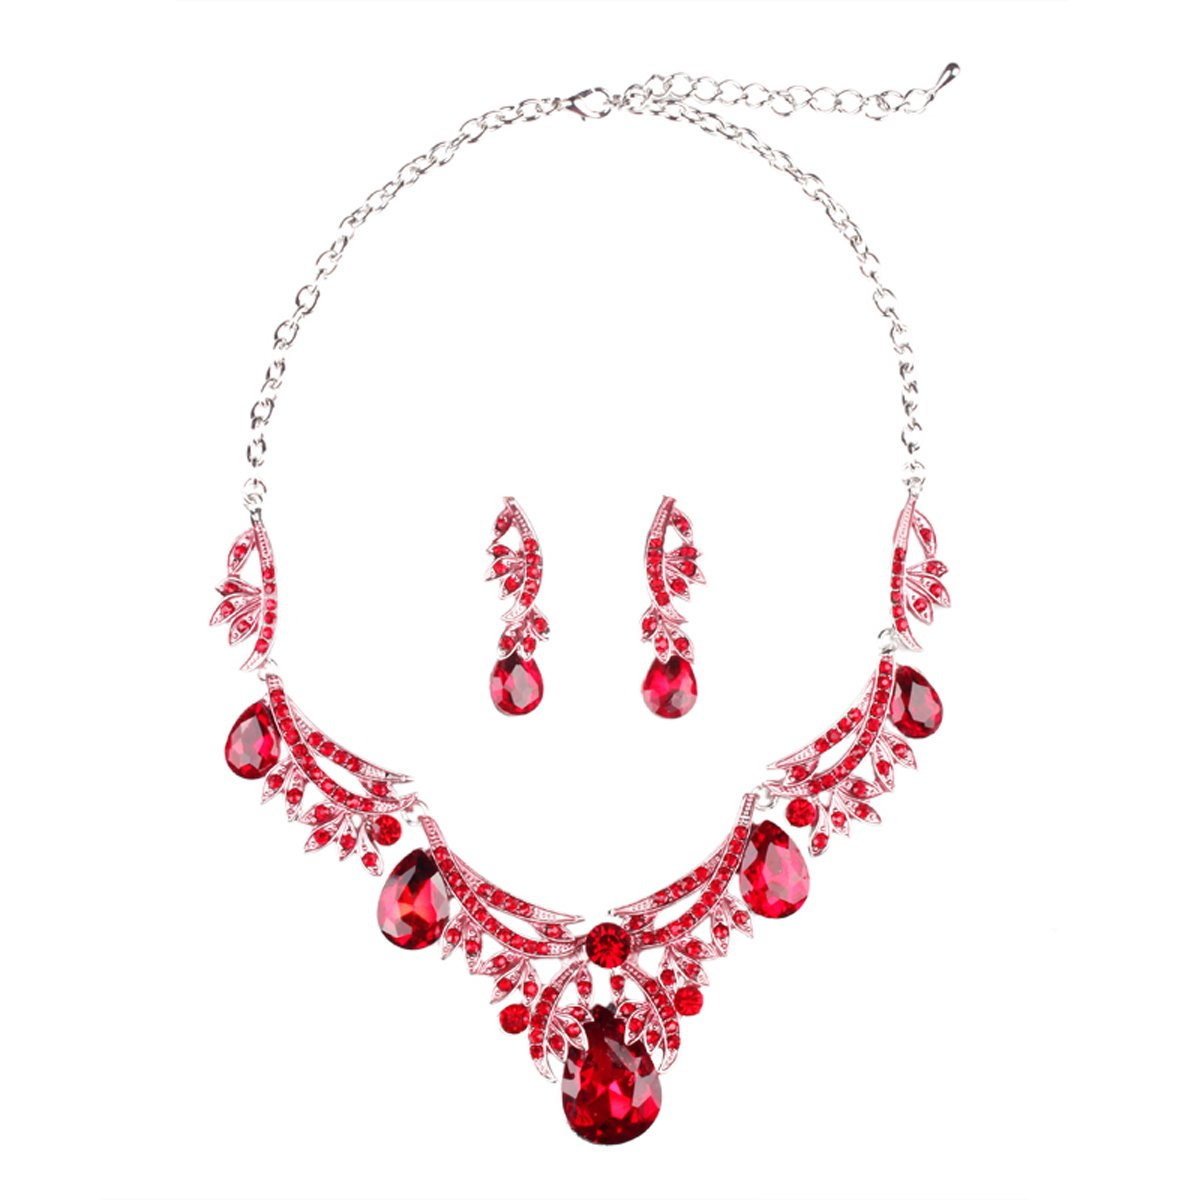 Hamer Costume Jewelry Multicolor Hand Painting Crystal Choker Pendant Statement Chain Charm Necklace Earrings Sets Women (Red, Alloy)